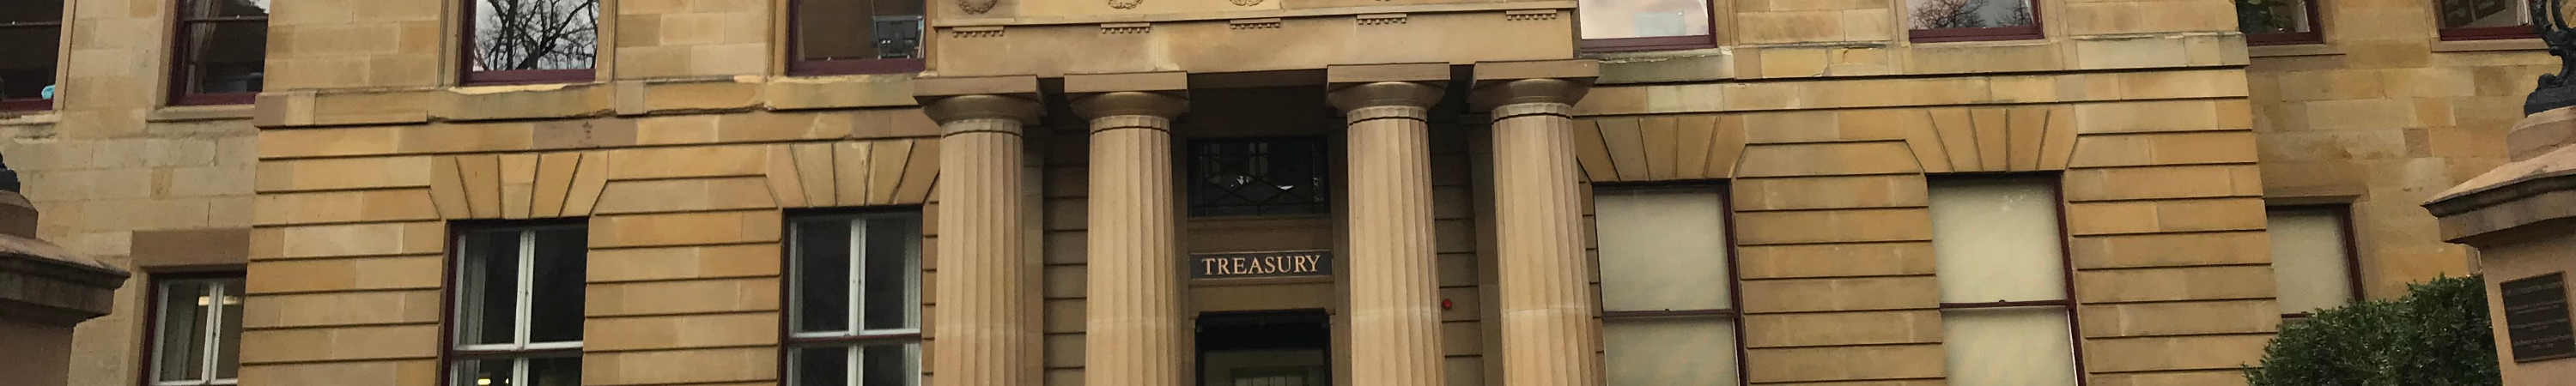 Heritage Treasury Building, Tasmania